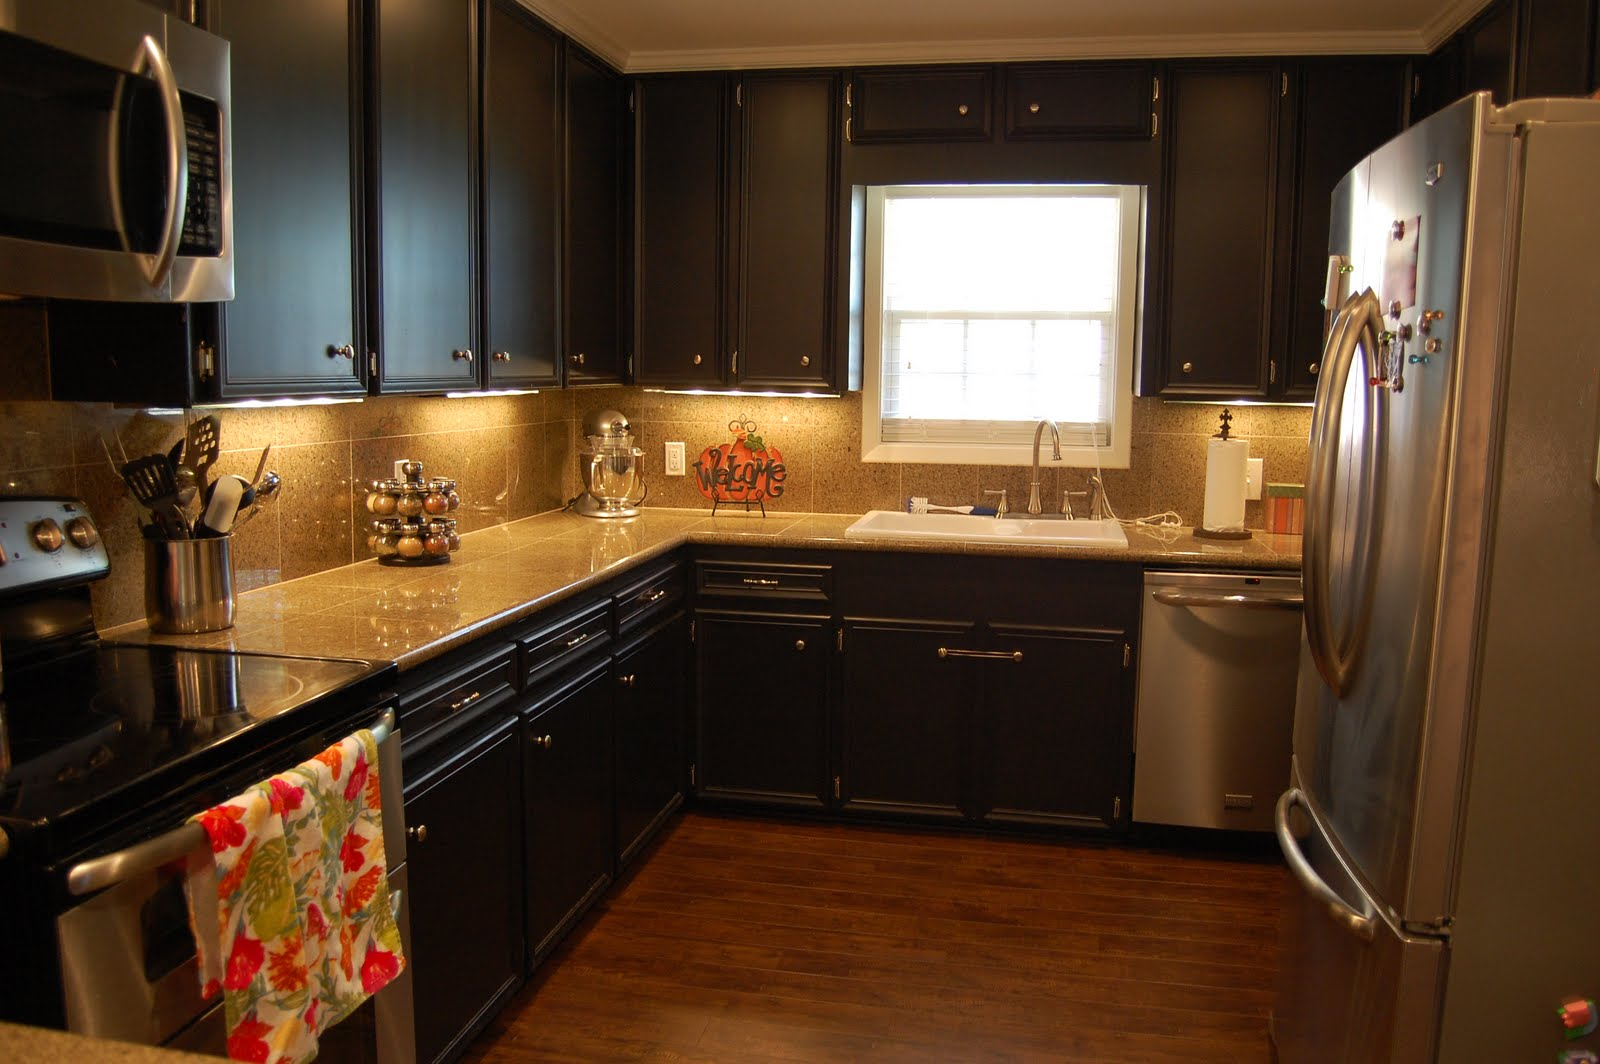 Musings of a farmer 39 s wife kitchen remodel pictures - Black kitchen cabinets ideas ...